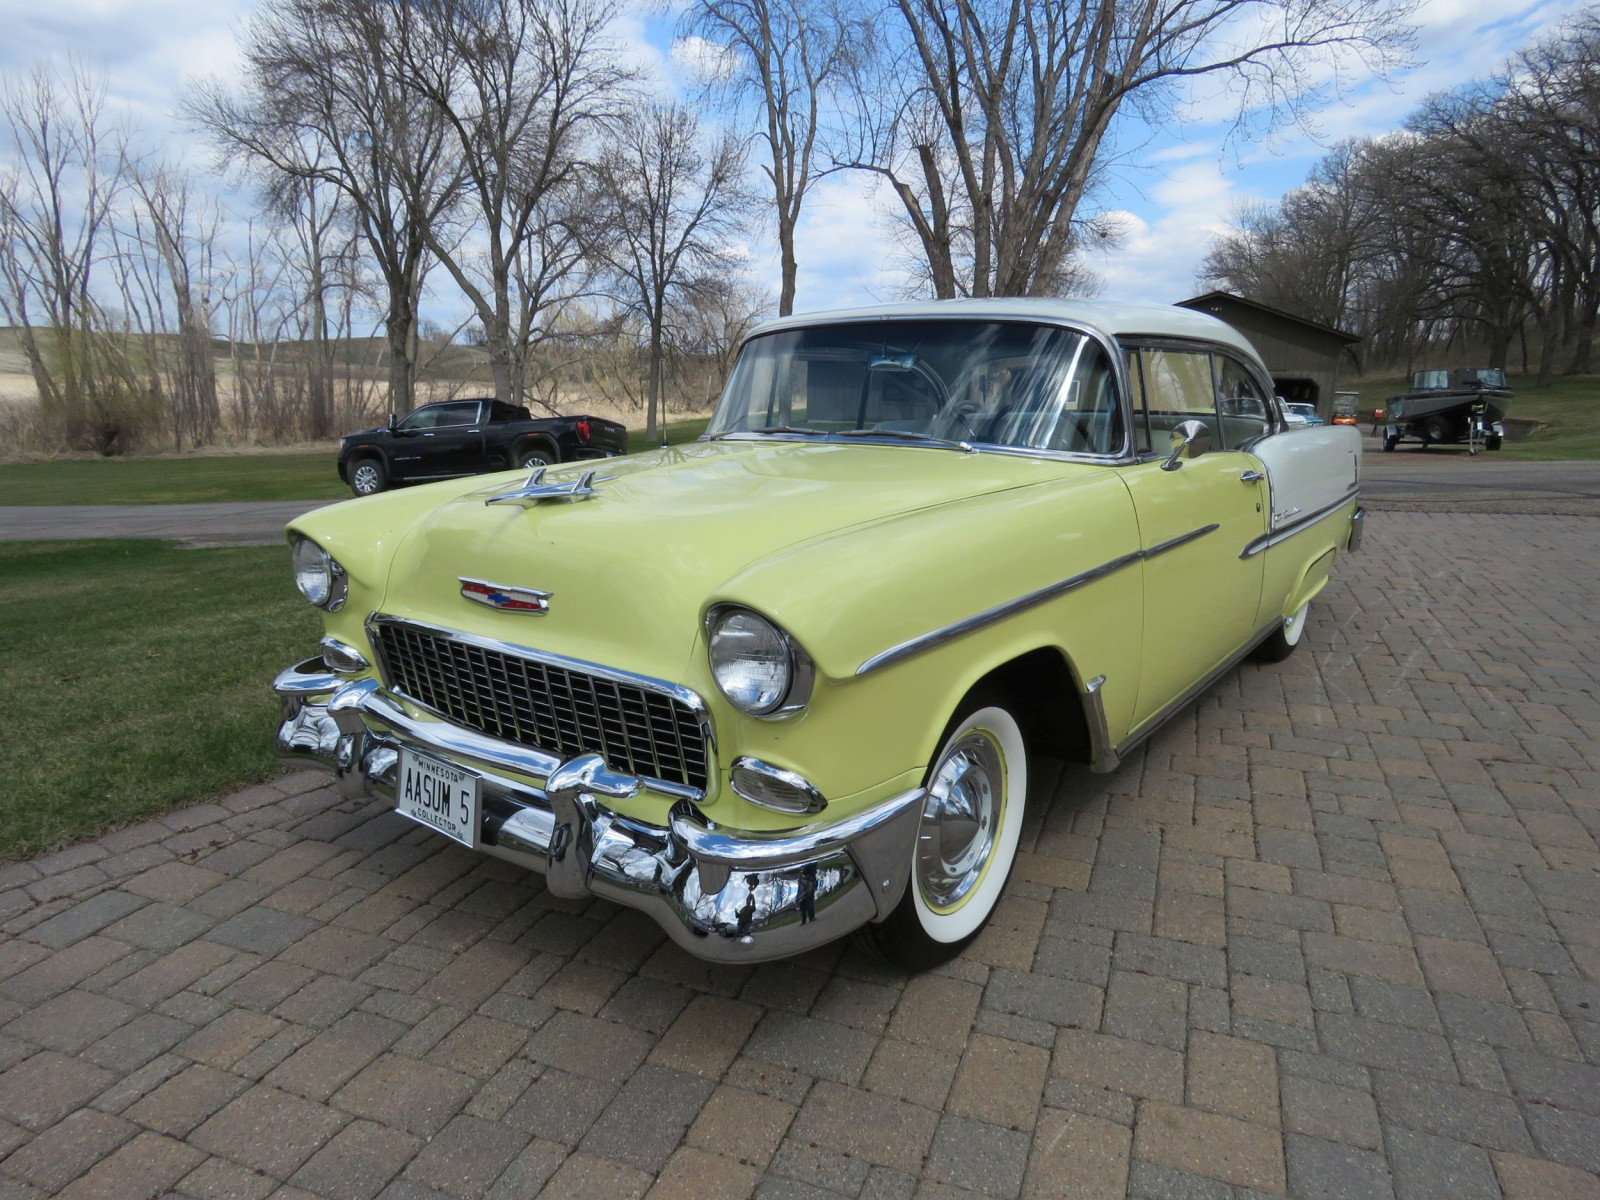 Beautiful 1955 Chevrolet Bel Air 2dr HT - Image 1